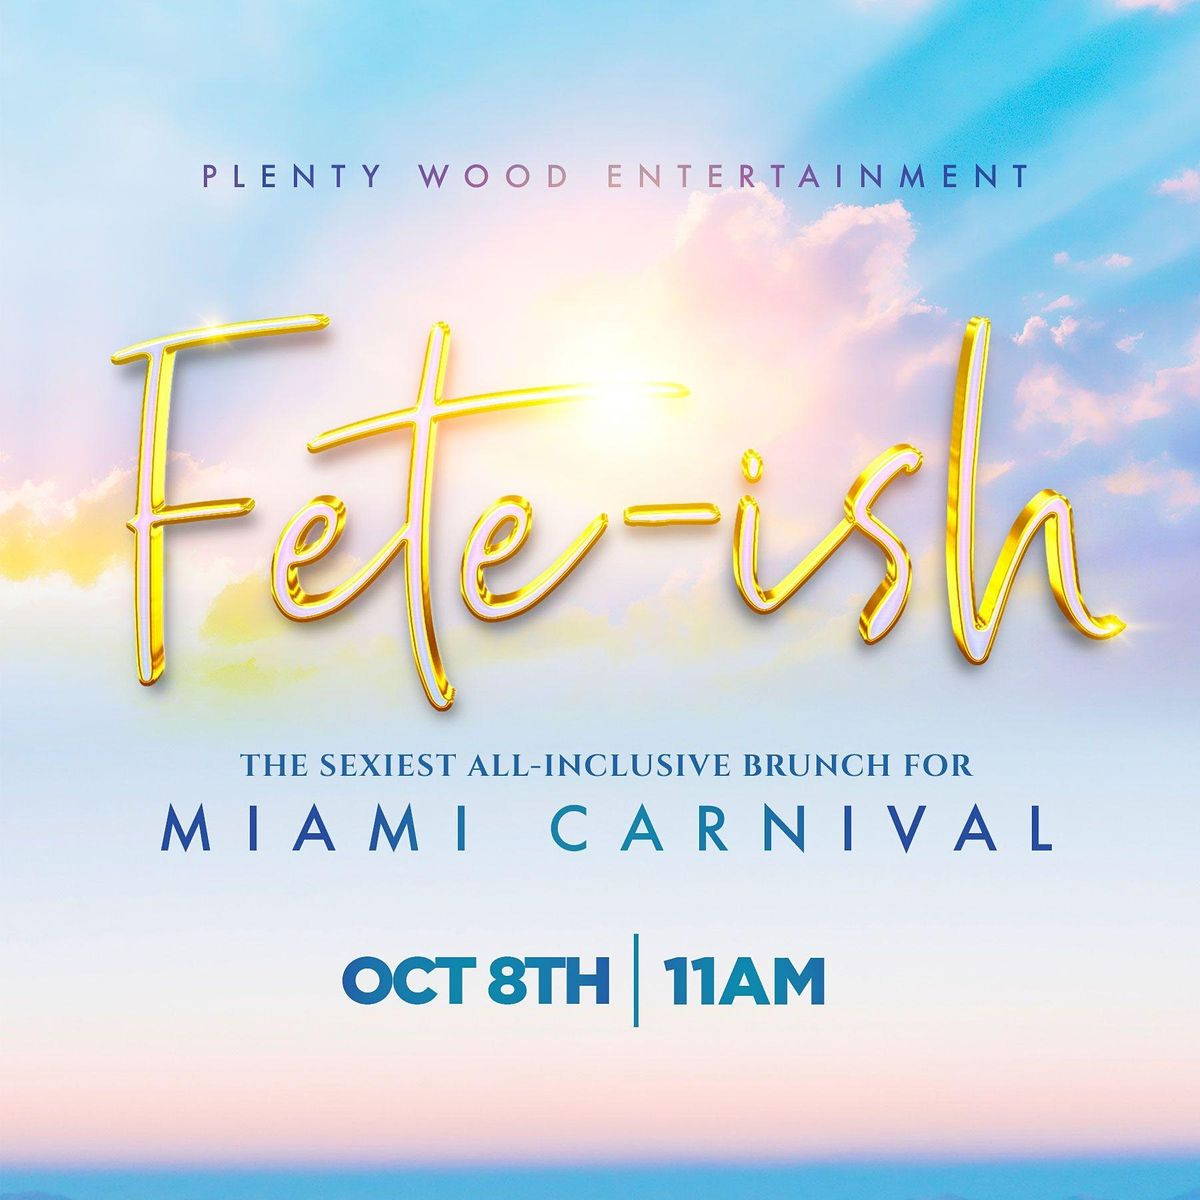 Fete-ish (The Sexiest All Inclusive Brunch for Miami Carnival)